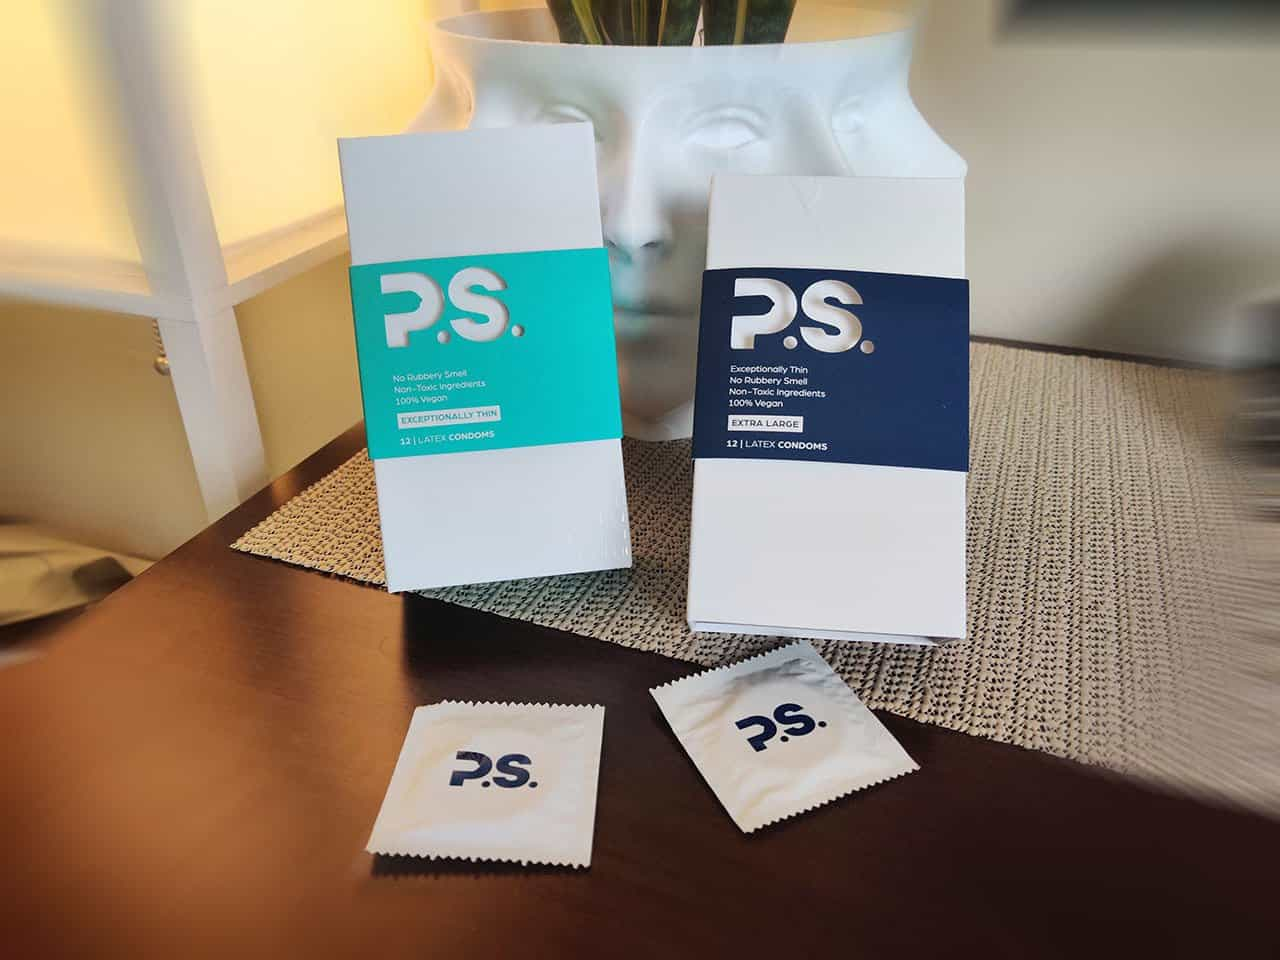 ps condoms on a table